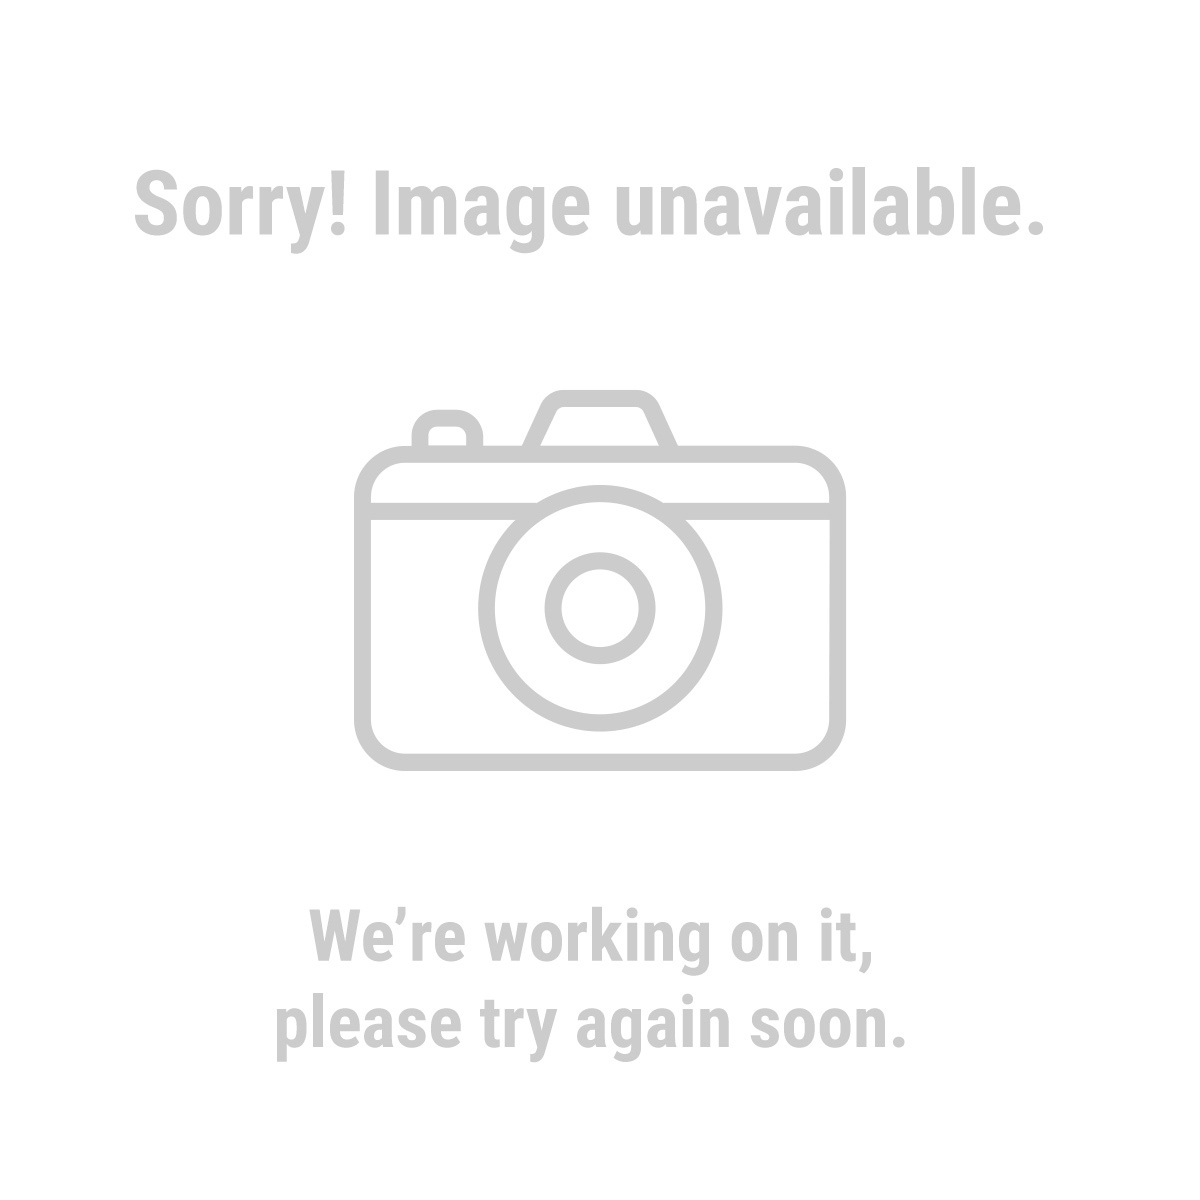 Central Machinery 40612 Mobile Folding Power Tool Stand